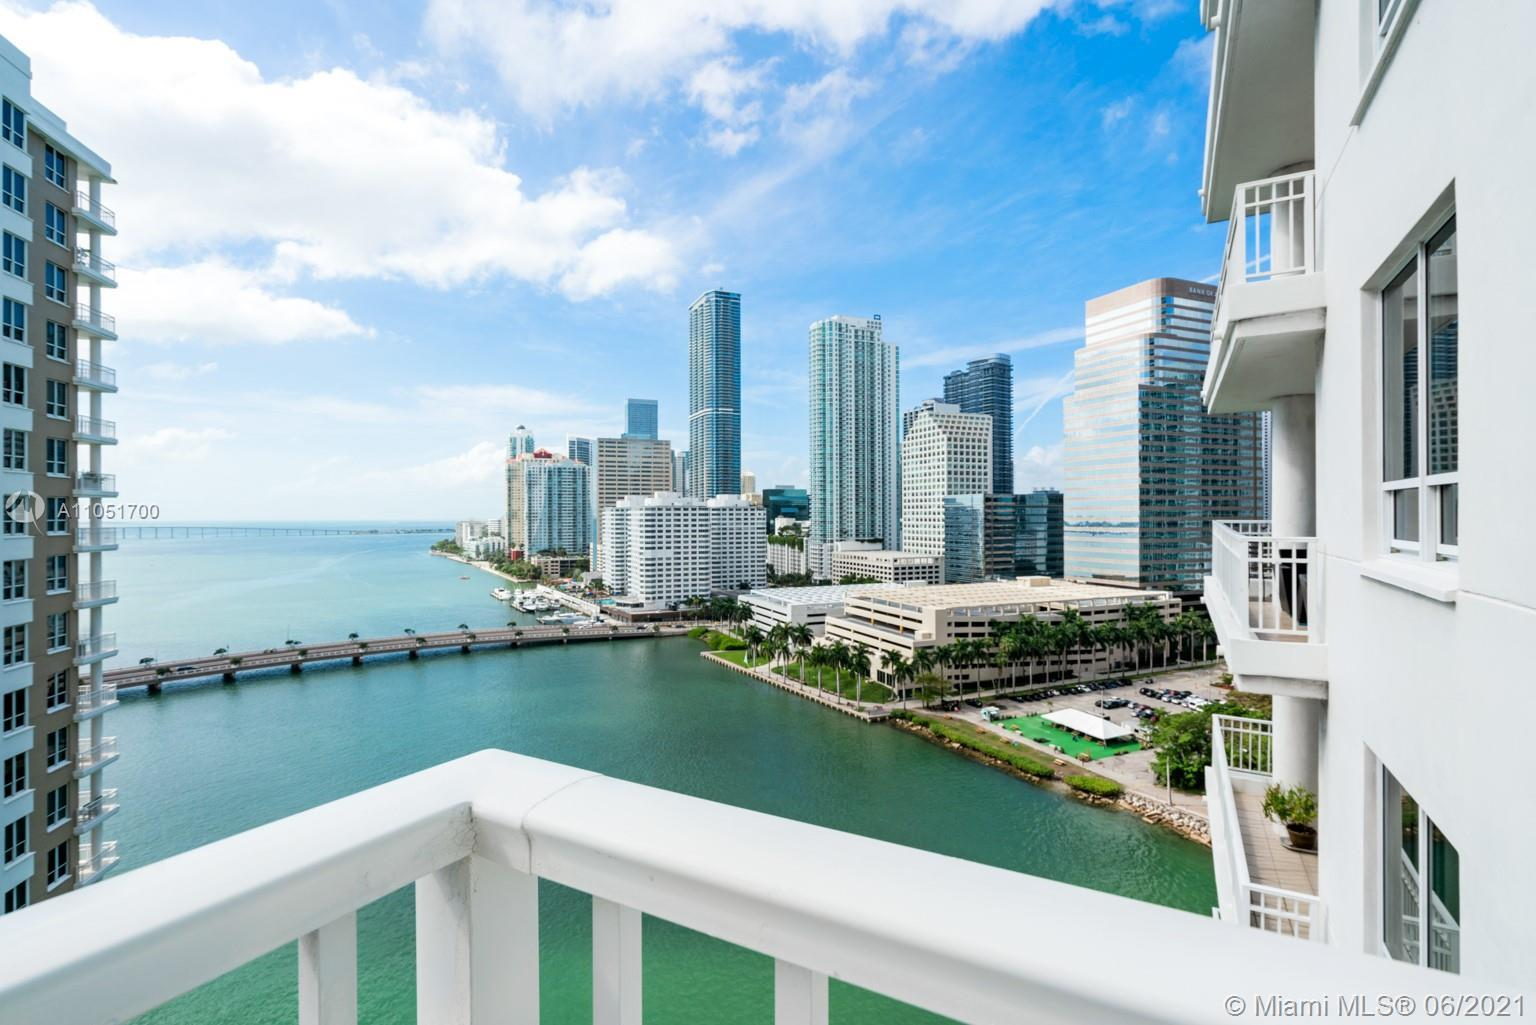 Unique opportunity! 3 bedrooms, 3 full bathrooms spacious unit located on the desirable Brickell Key